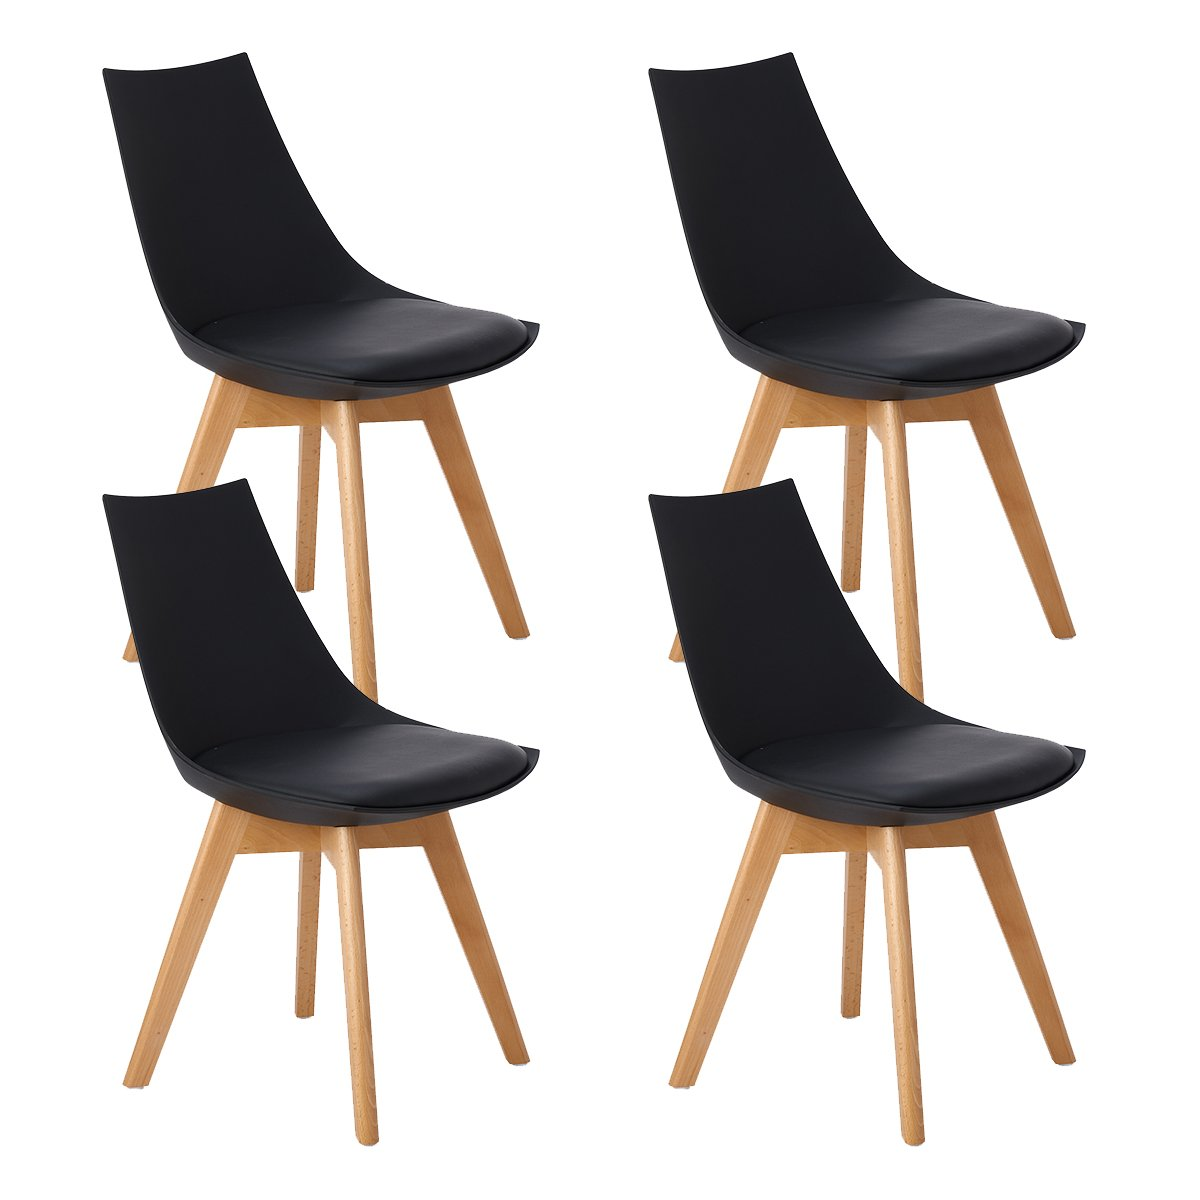 DORAFAIR Set of 2 Mordern Design Scandinavian Dining Chairs with Padded and Solid Wood Beech Legs,Retro Design Black